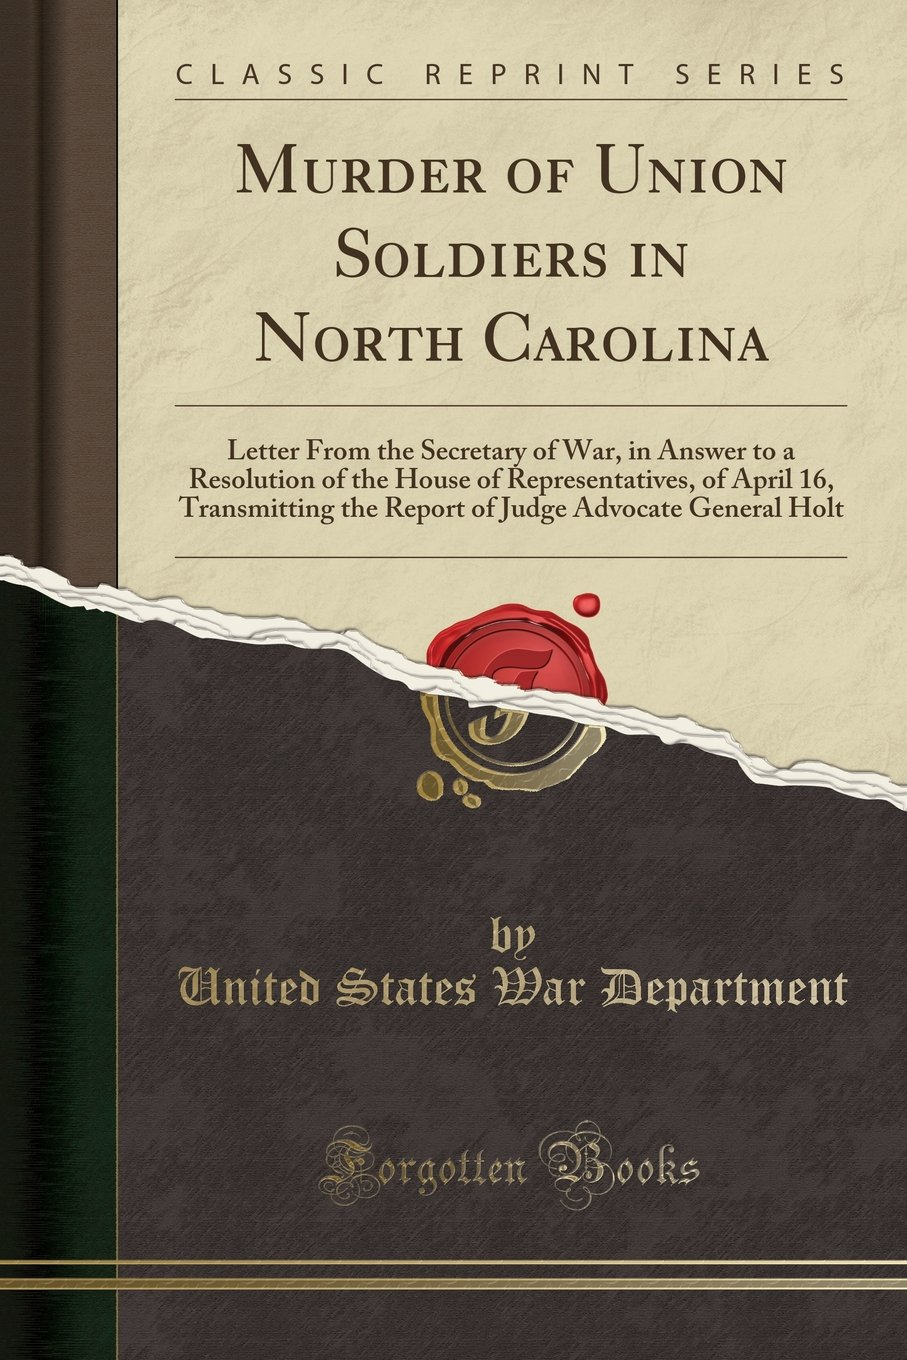 Murder of Union Soldiers in North Carolina: Letter From the Secretary of War, in Answer to a Resolution of the House of Representatives, of April 16, ... Judge Advocate General Holt (Classic Reprint) pdf